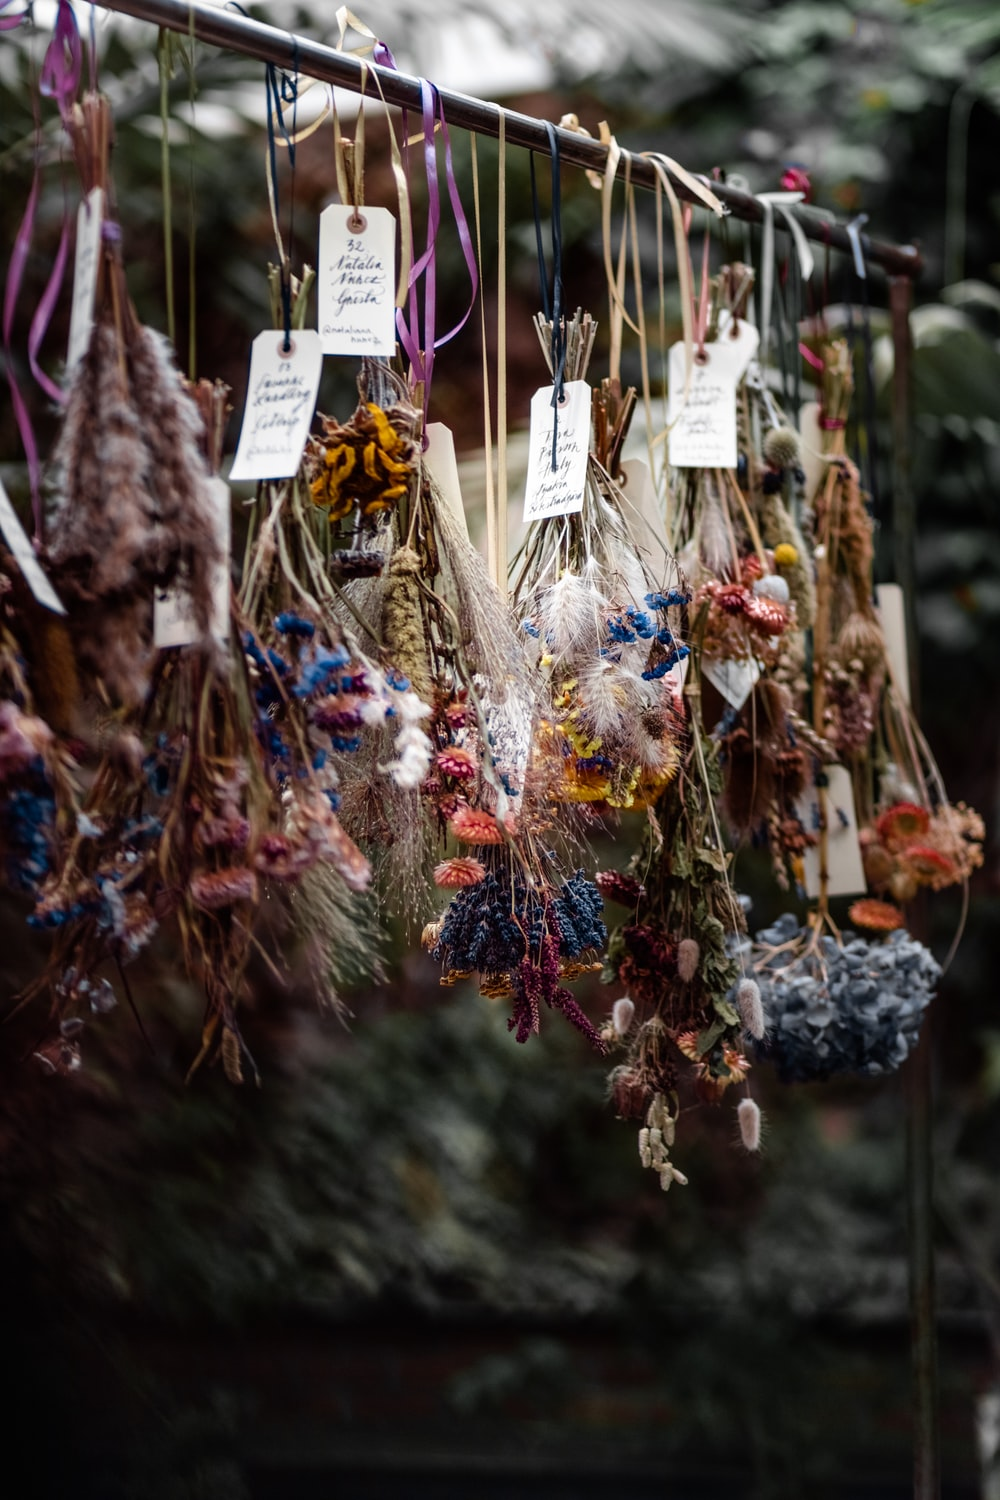 macro photography of assorted-color ornaments hanging on stick